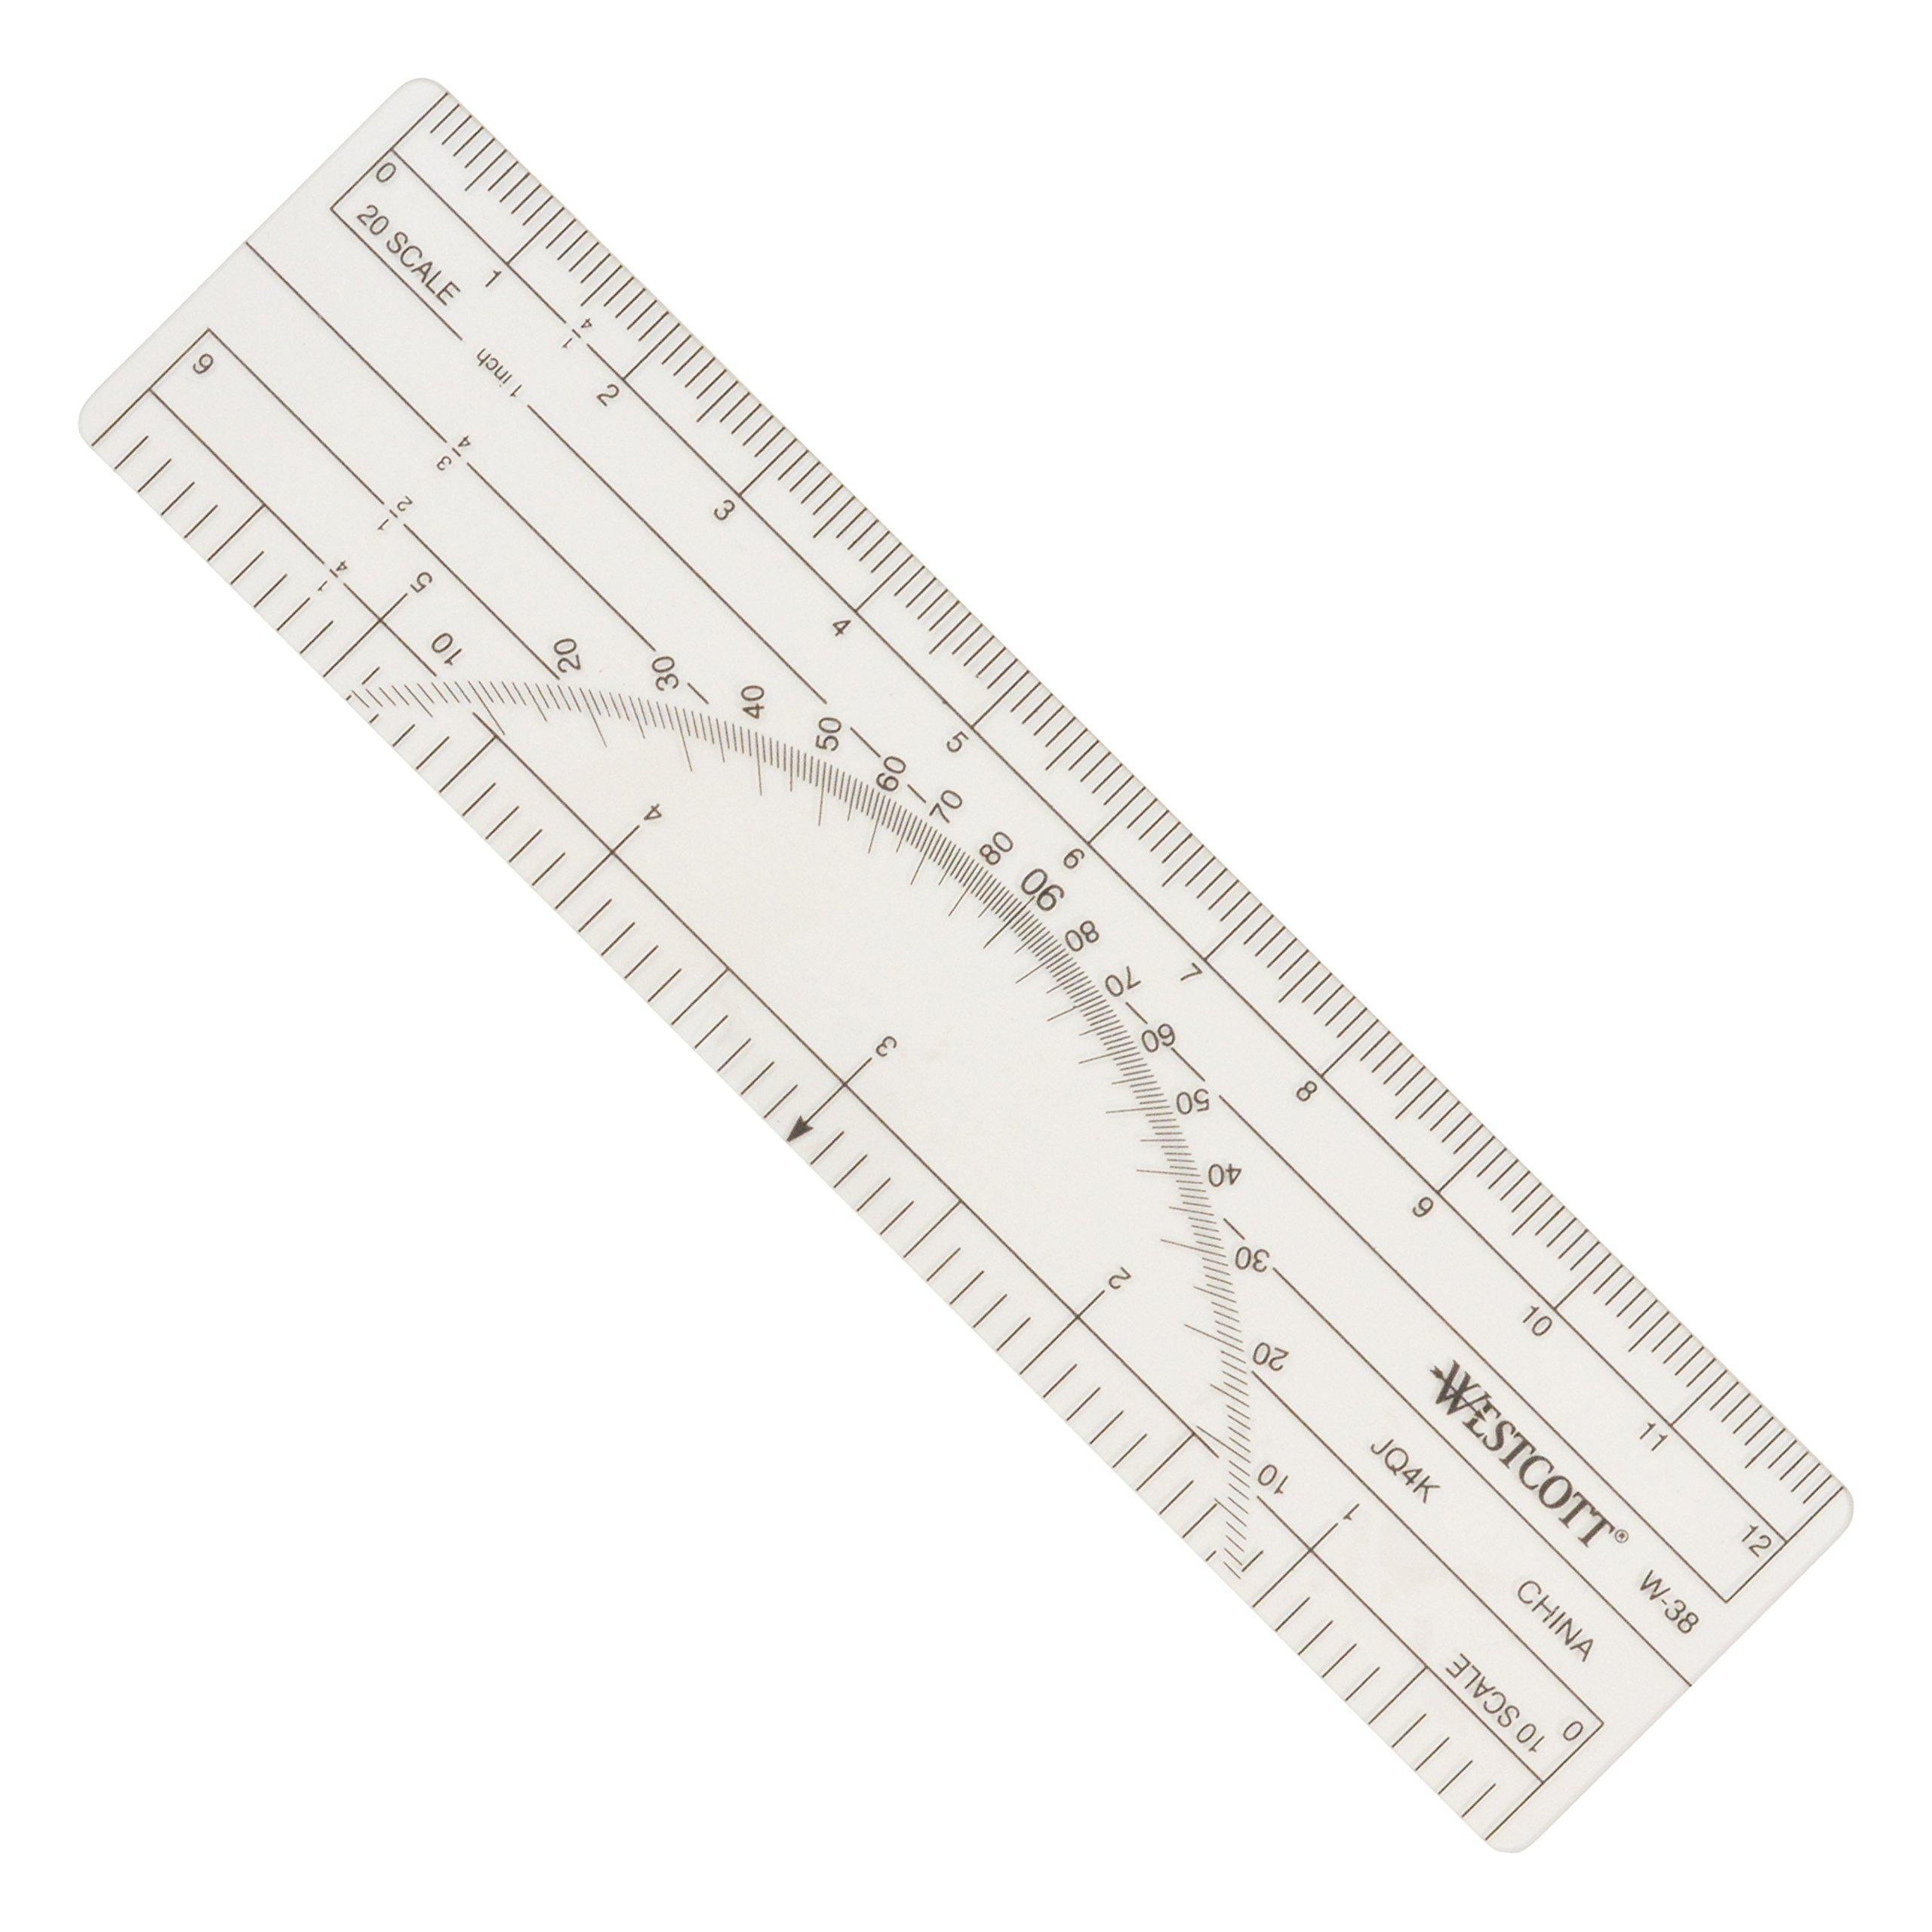 Westcott Protractor Ruler 6'', 10ths, 20ths, Transparent (W-38) by Westcott